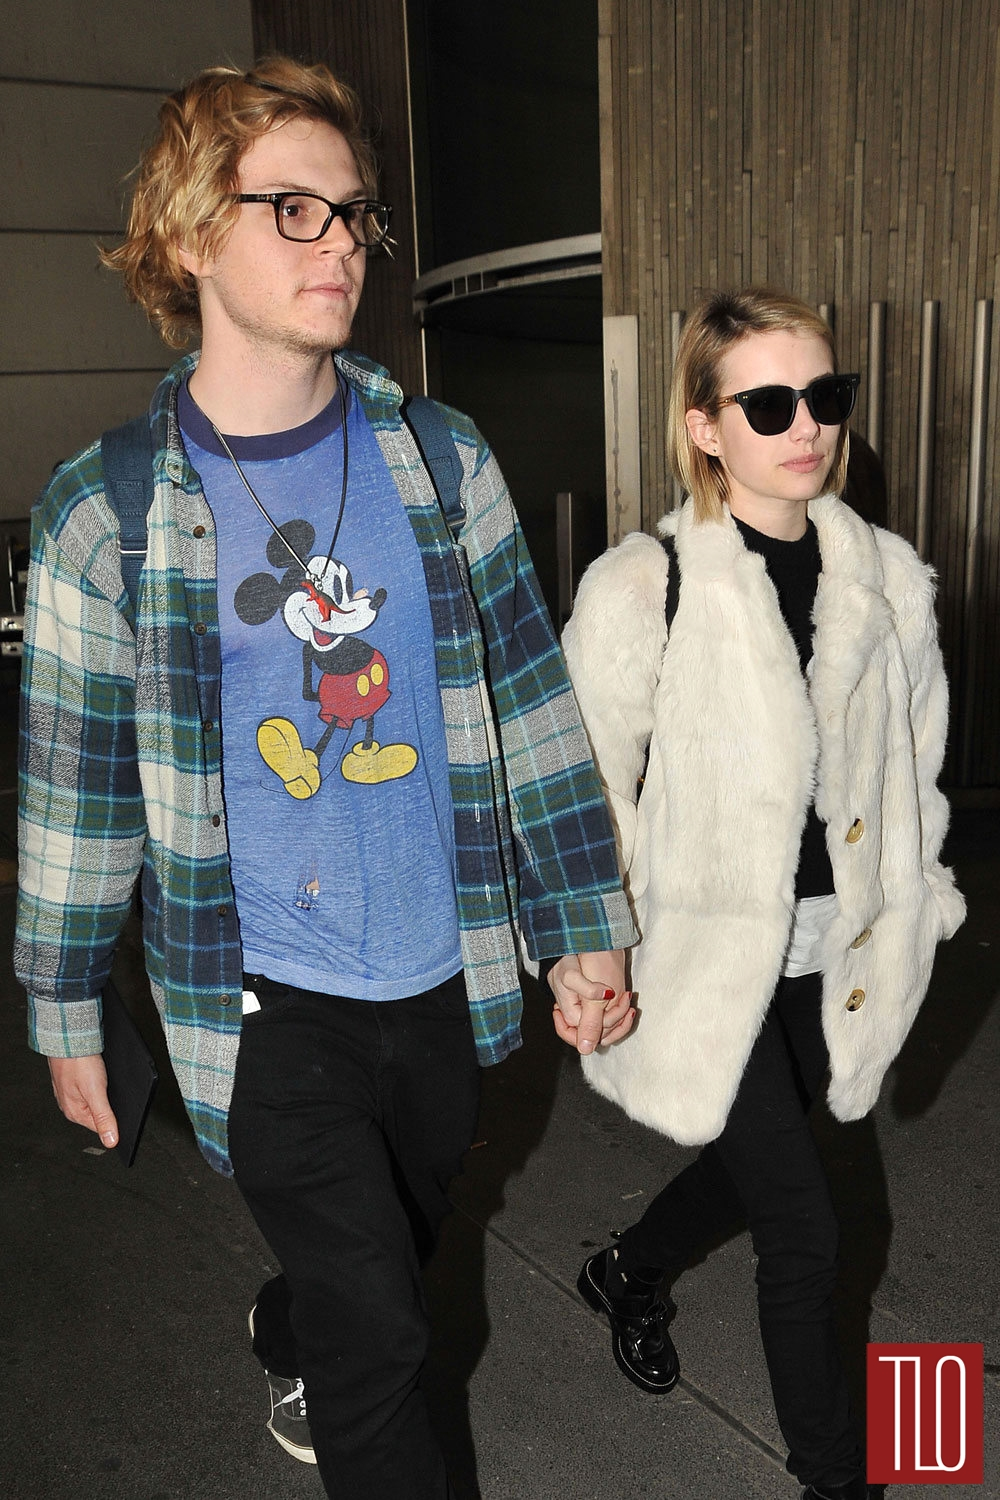 Evan-Peters-Emma-Roberts-GOTS-Paris-Tom-Lorenzo-Site-TLO (1)